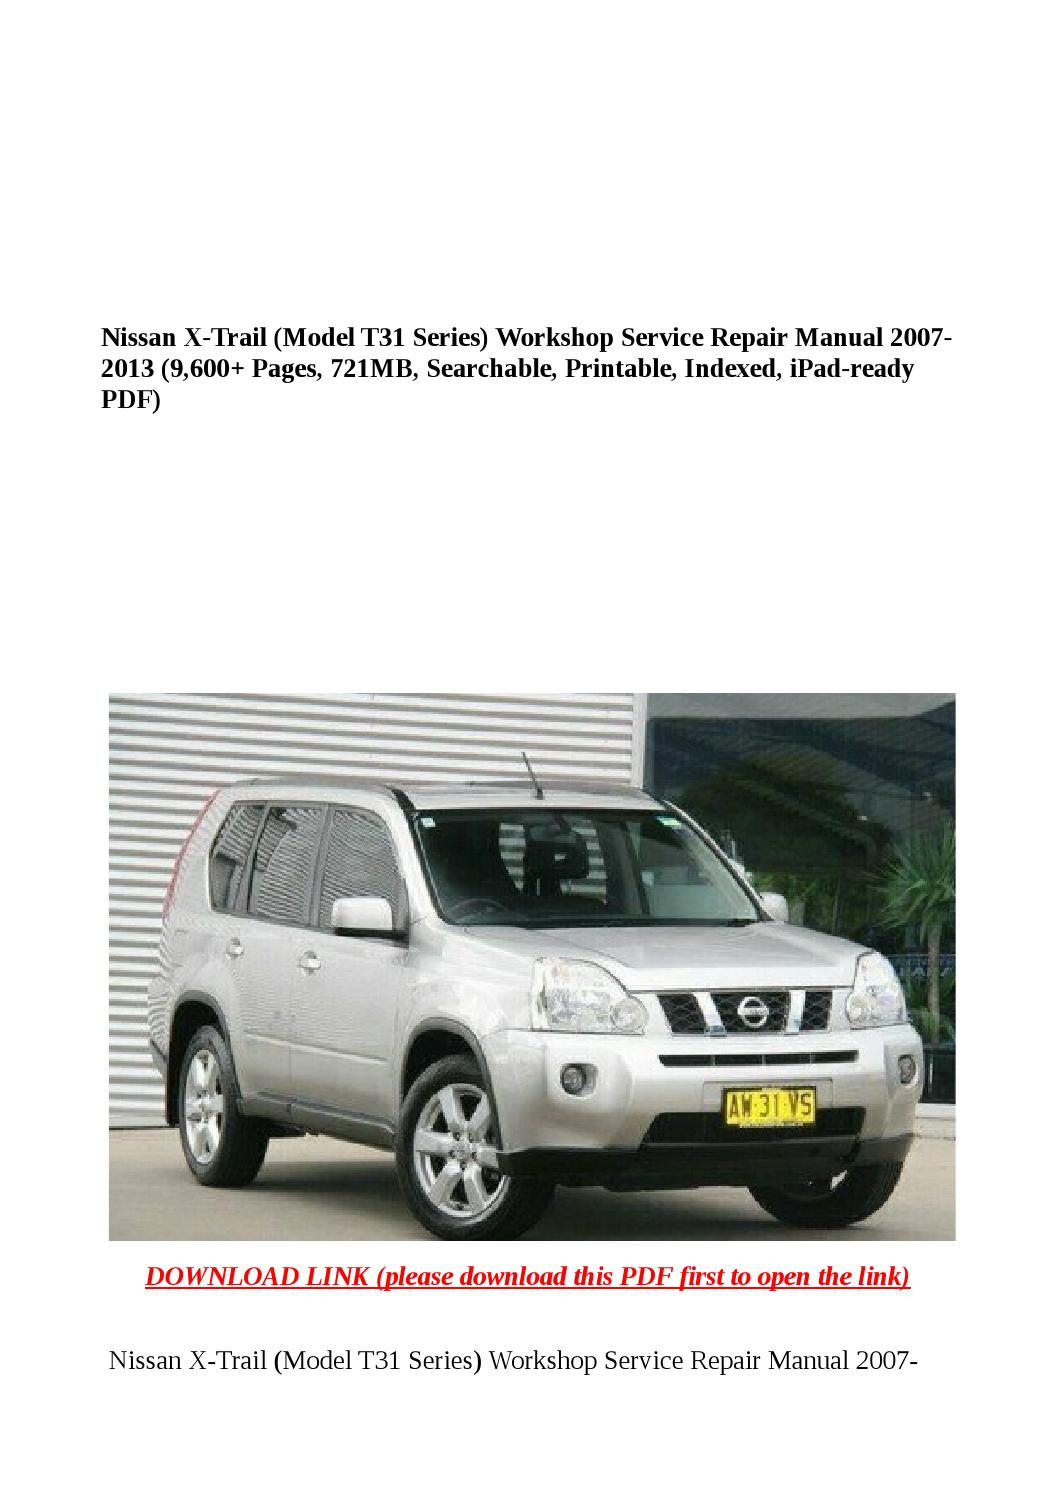 Nissan x trail (model t31 series) workshop service repair manual 2007 2013  (9,600 pages, 721mb, sear by Greace Clark - issuu